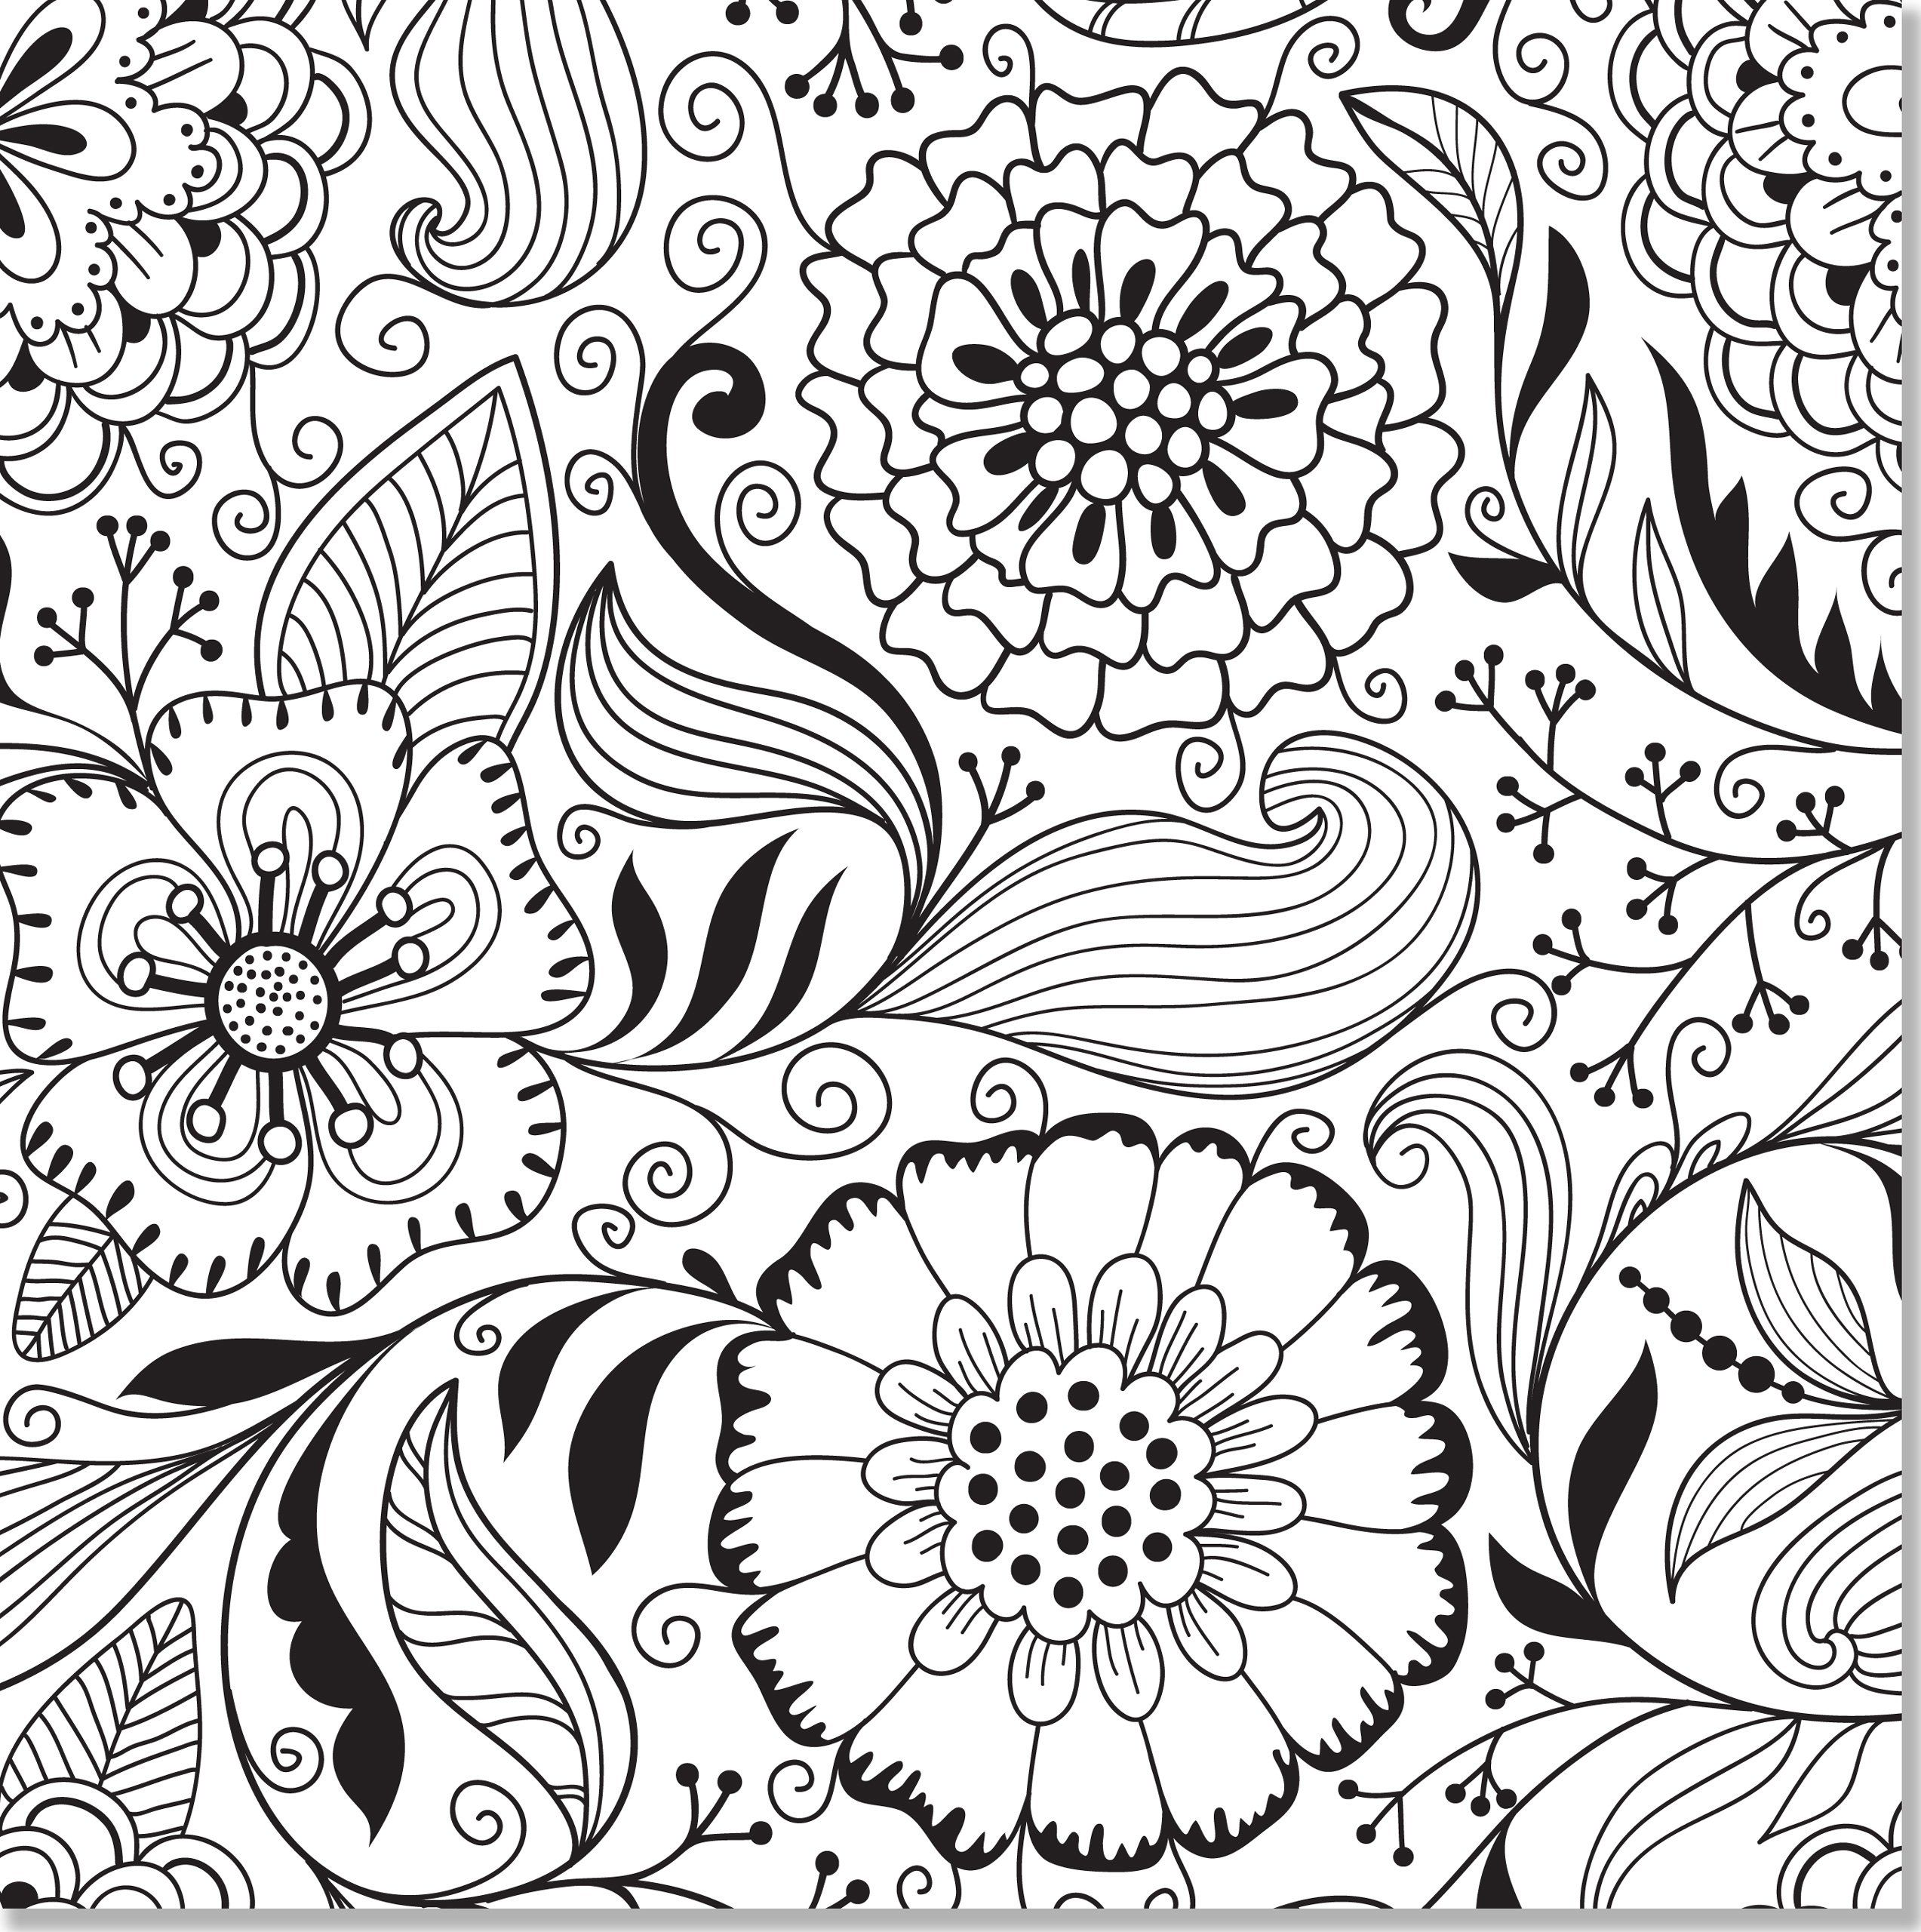 Lotus designs coloring book - Butterfly And Flower Coloring Pages For Adults Free Printable